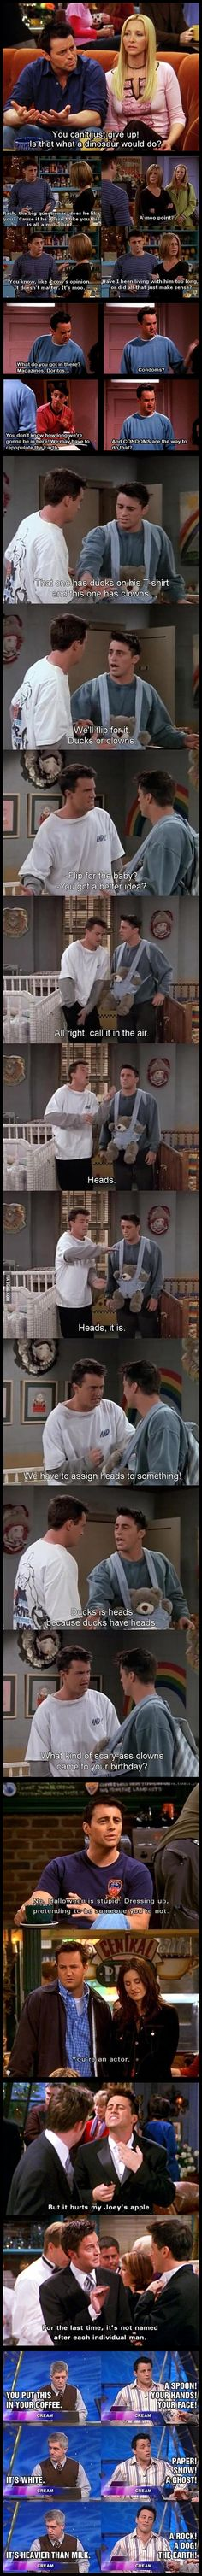 Funny pictures about The Flawless Logic Of Joey Tribbiani. Oh, and cool pics about The Flawless Logic Of Joey Tribbiani. Also, The Flawless Logic Of Joey Tribbiani photos. Serie Friends, Friends Moments, Friends Tv Show, Joey Friends, Friends Scenes, Friends Episodes, Monica Rachel, Bullshit, Pinstriping